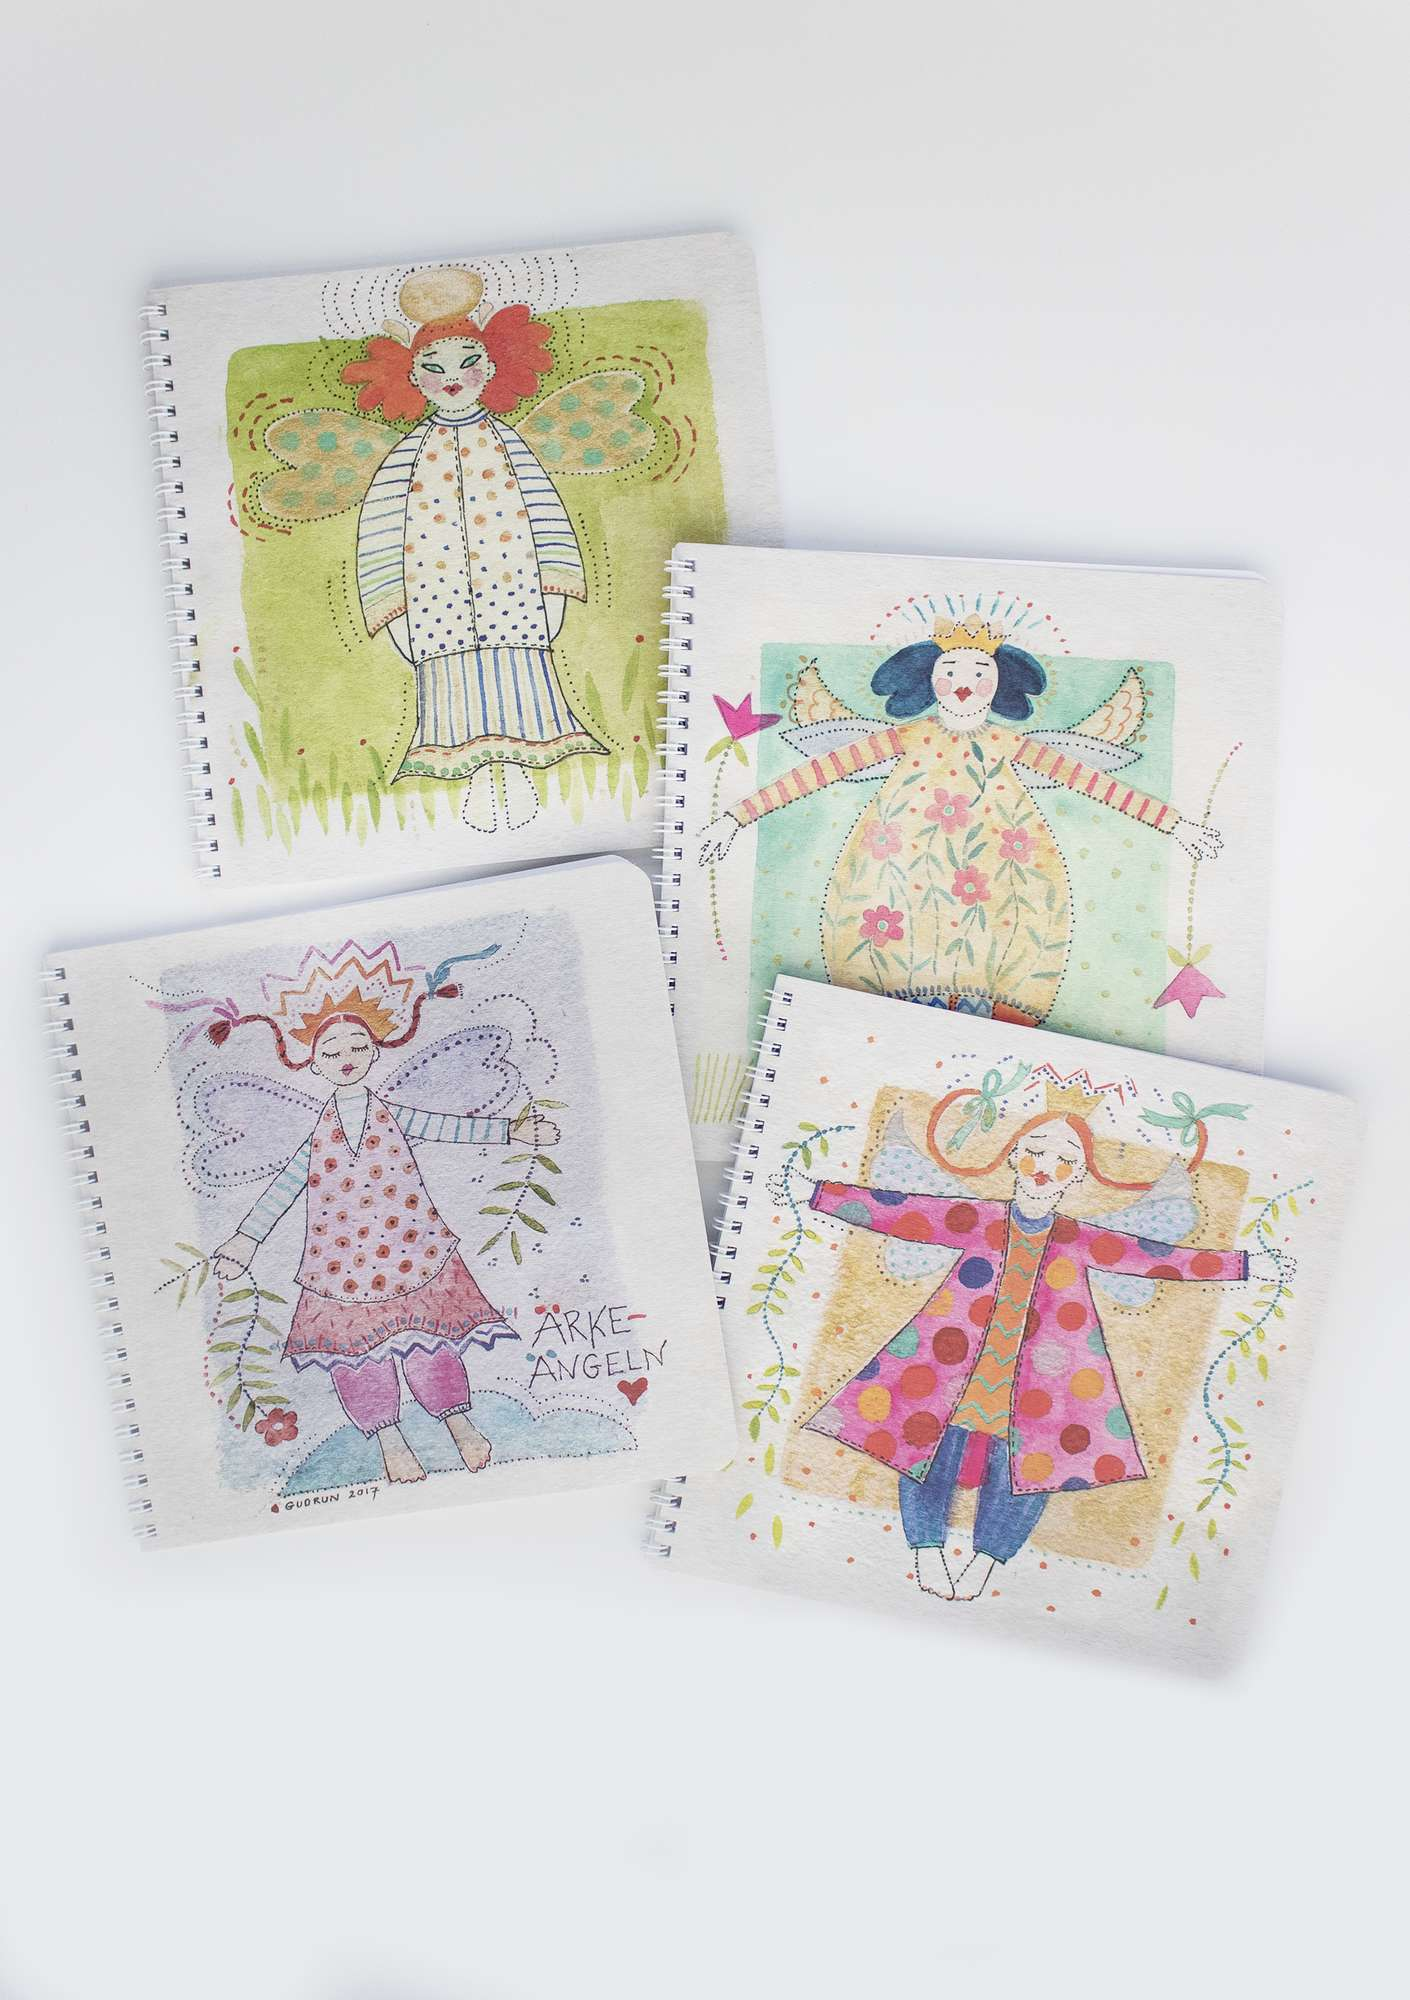 Ängel notebook multicoloured